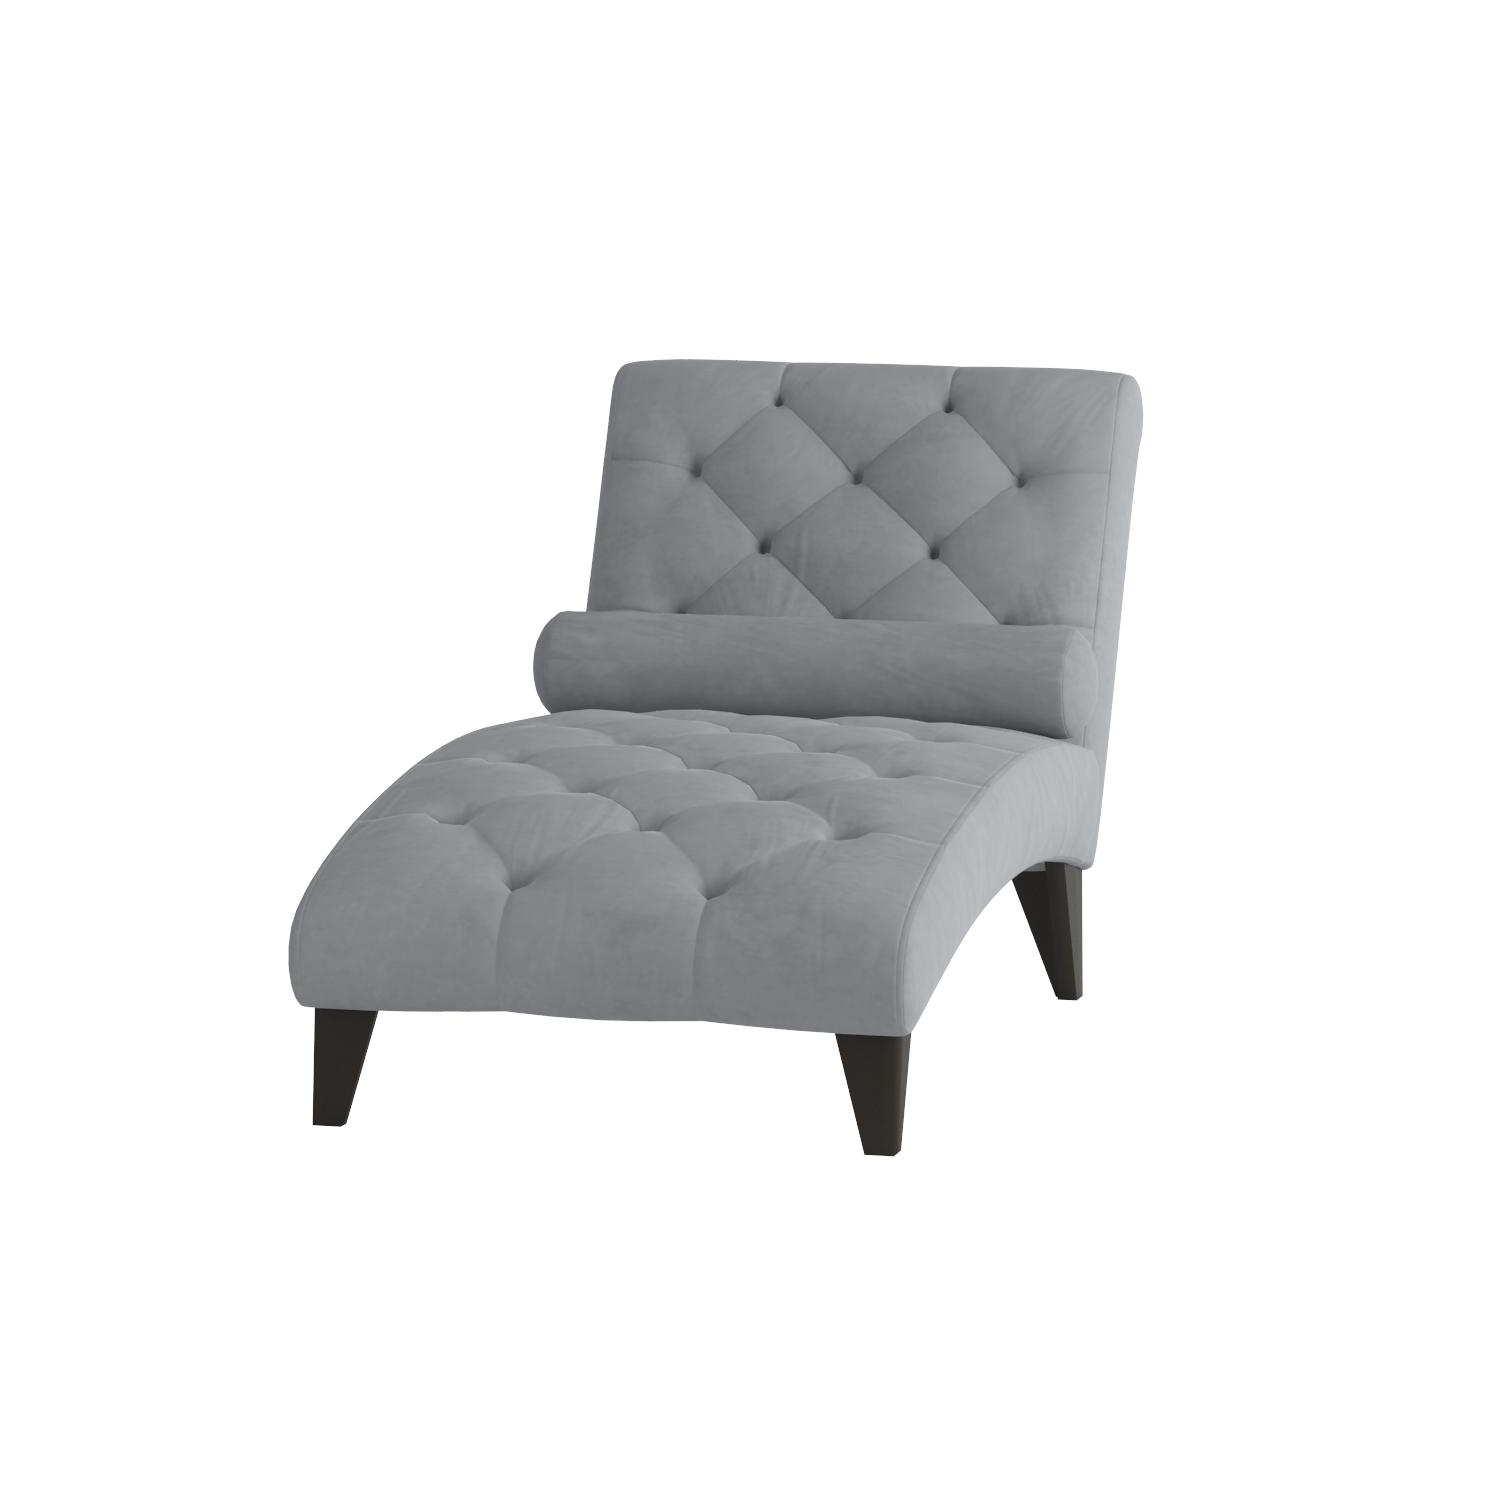 gray chairs ot chr chalkboard product chair accent